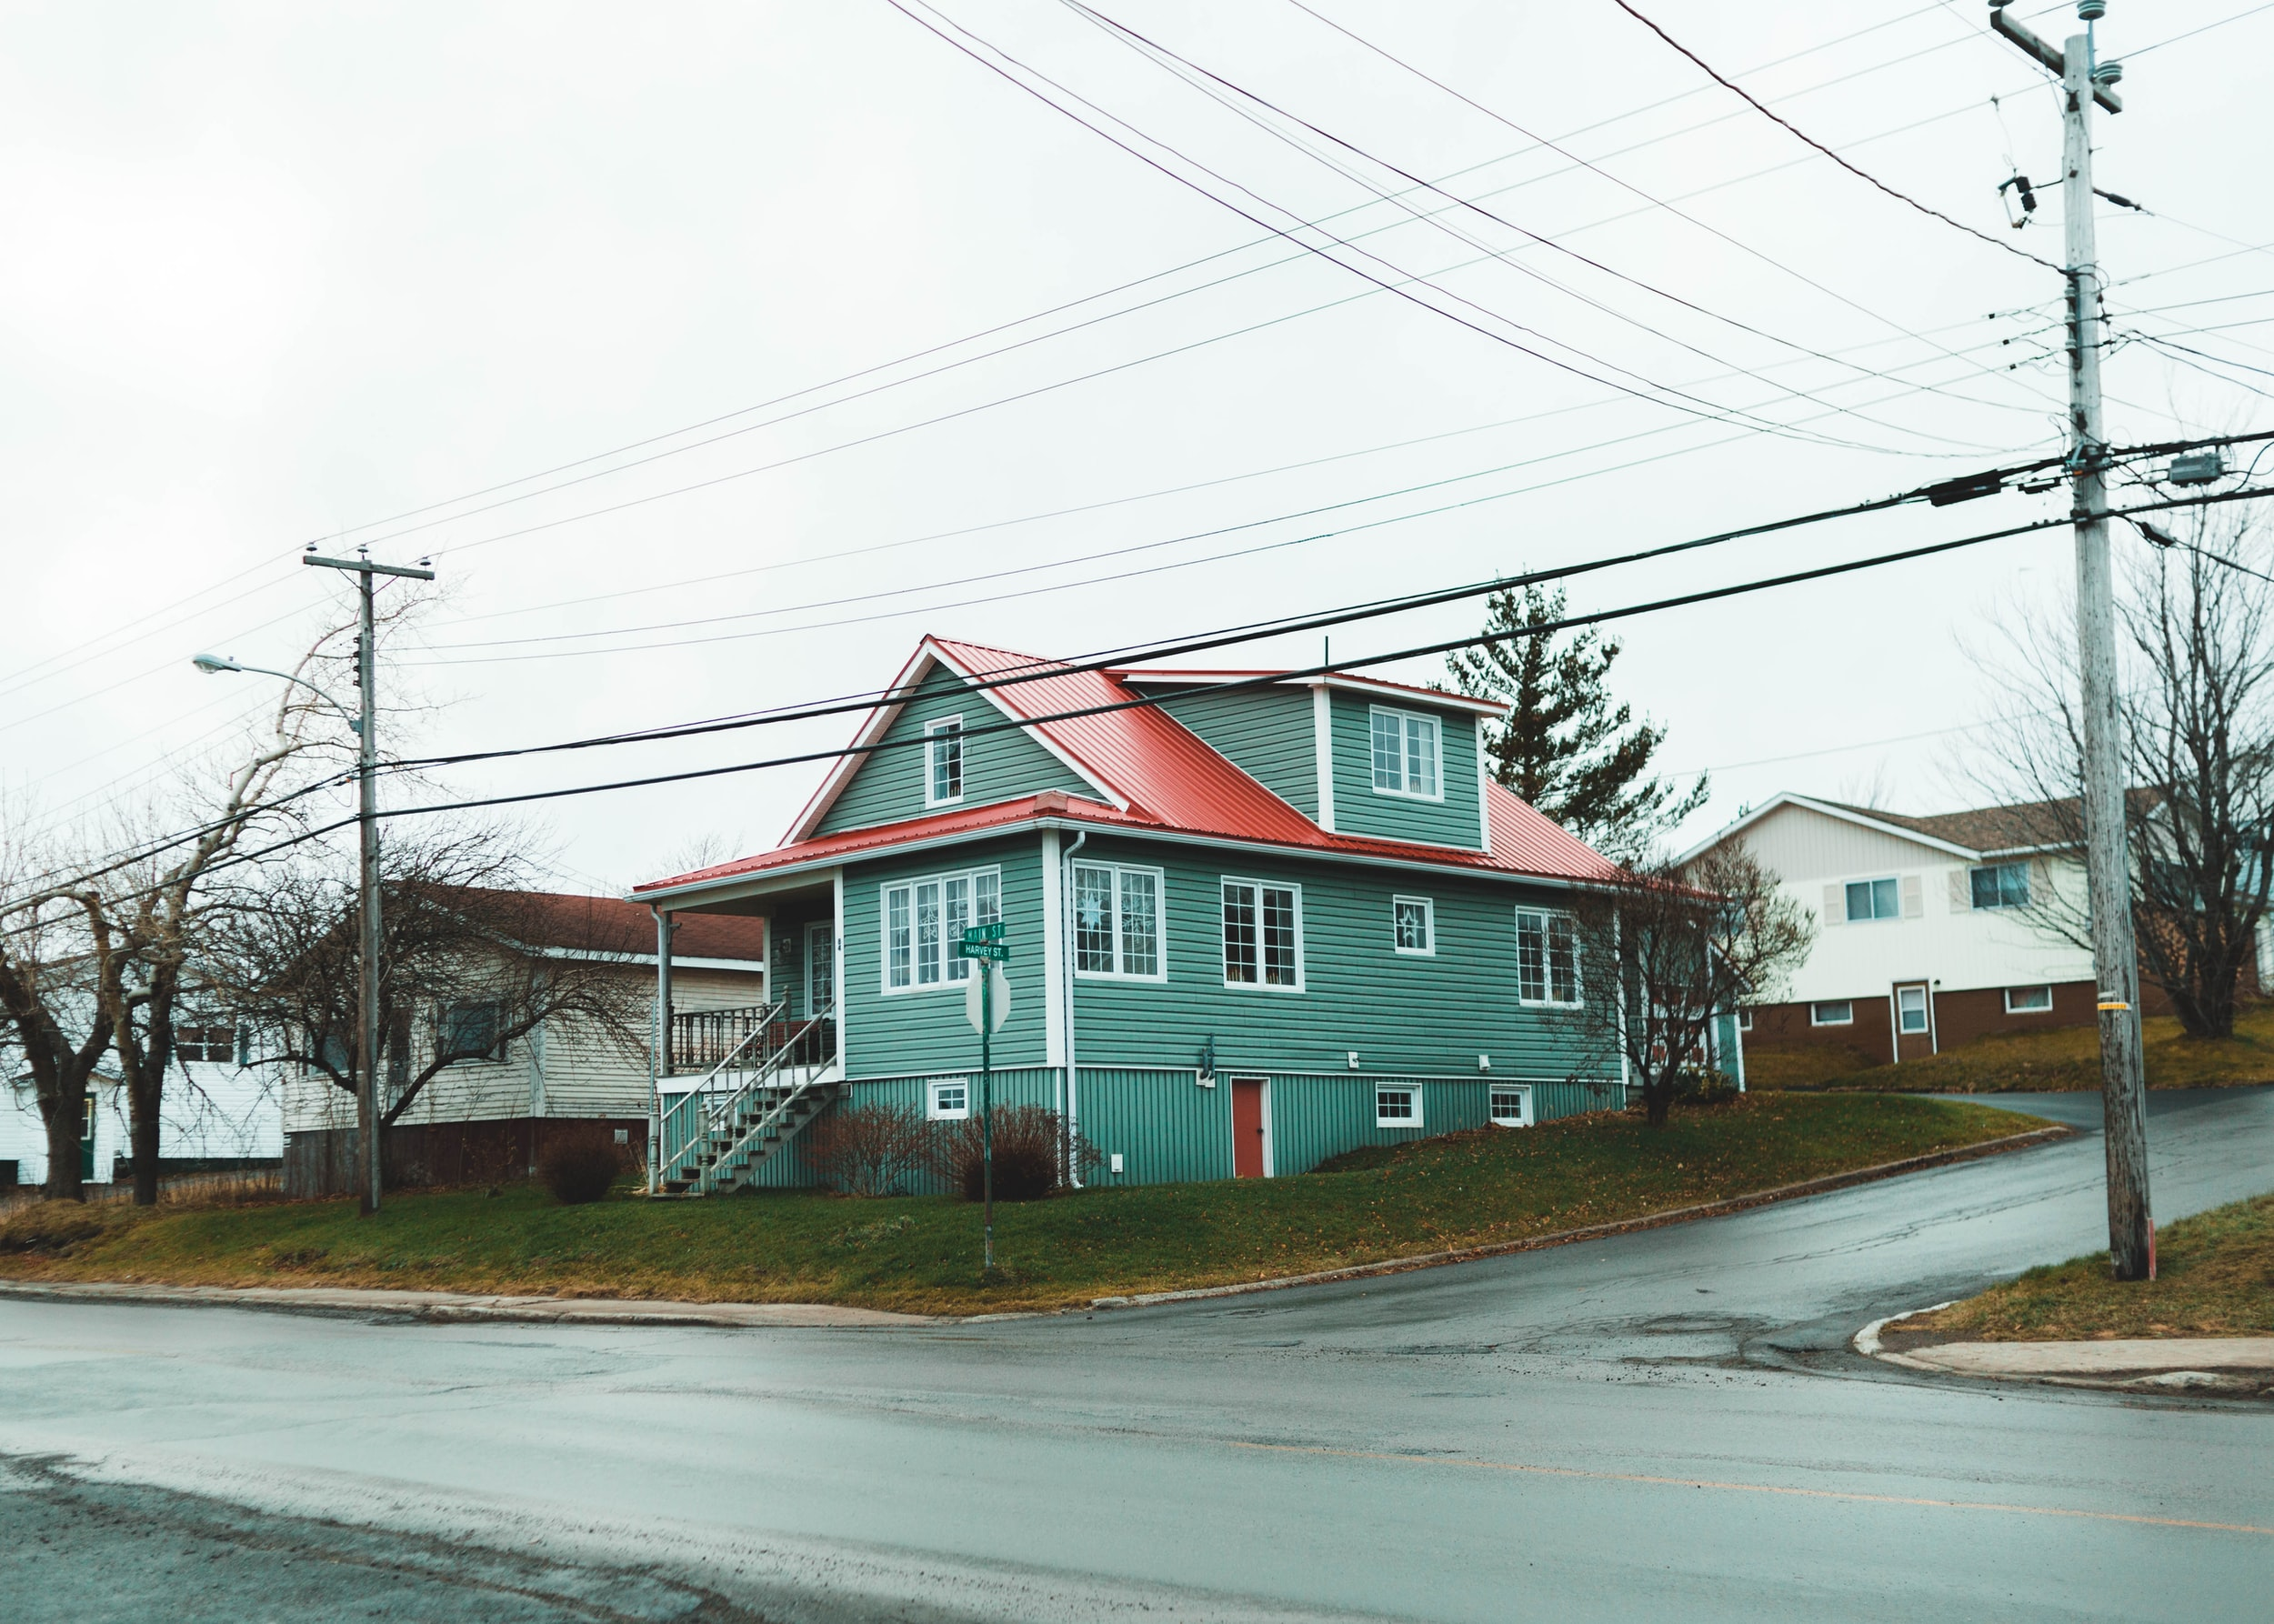 House with road